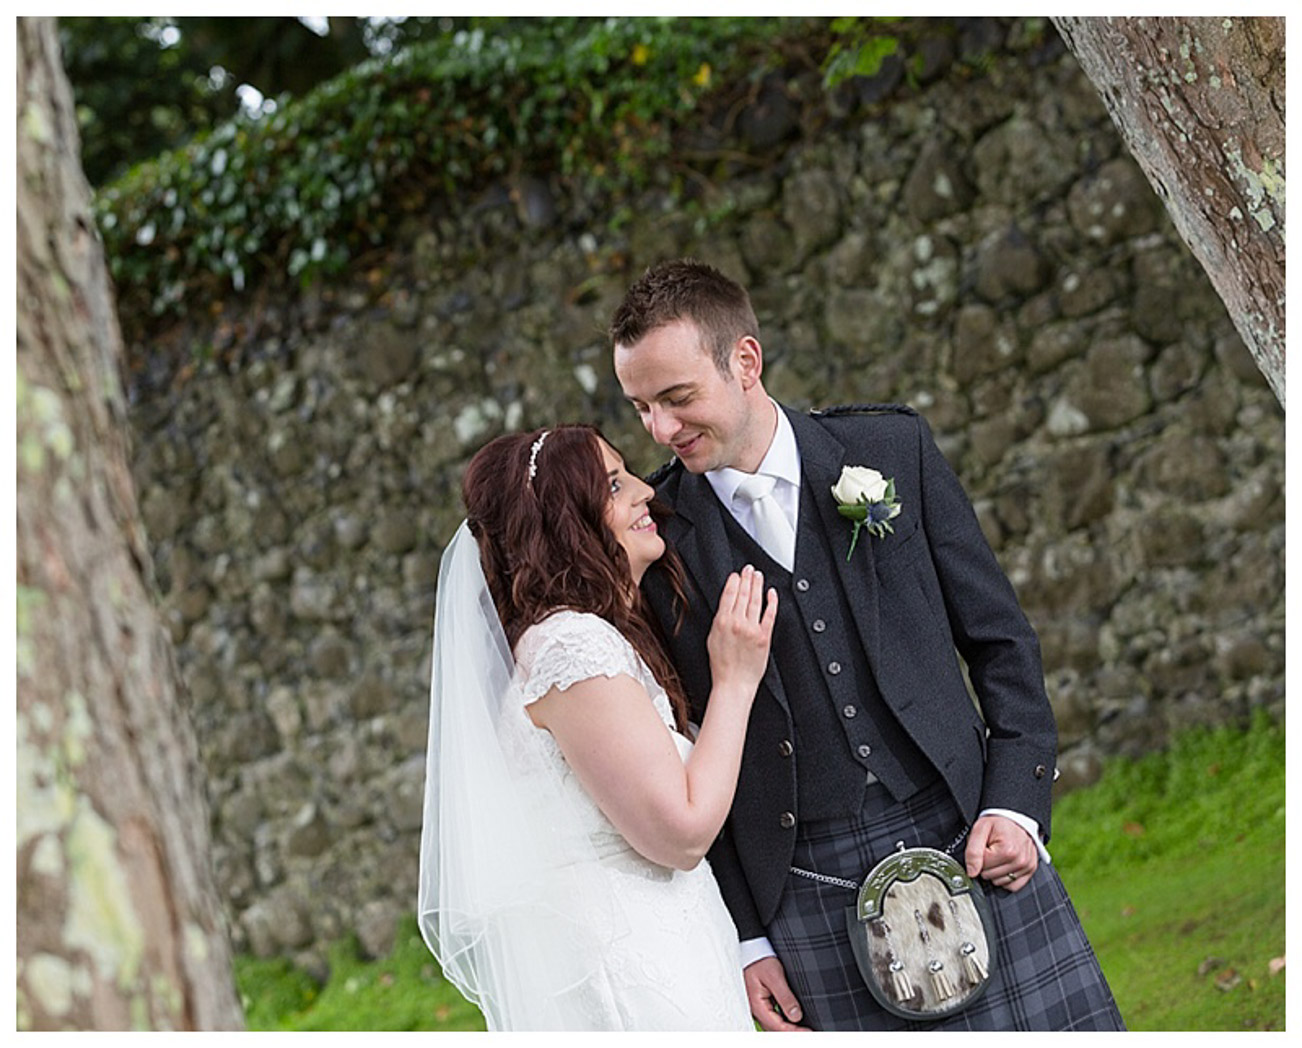 Ballygally Castle Wedding Photographs by Ricky Parker Photography 45